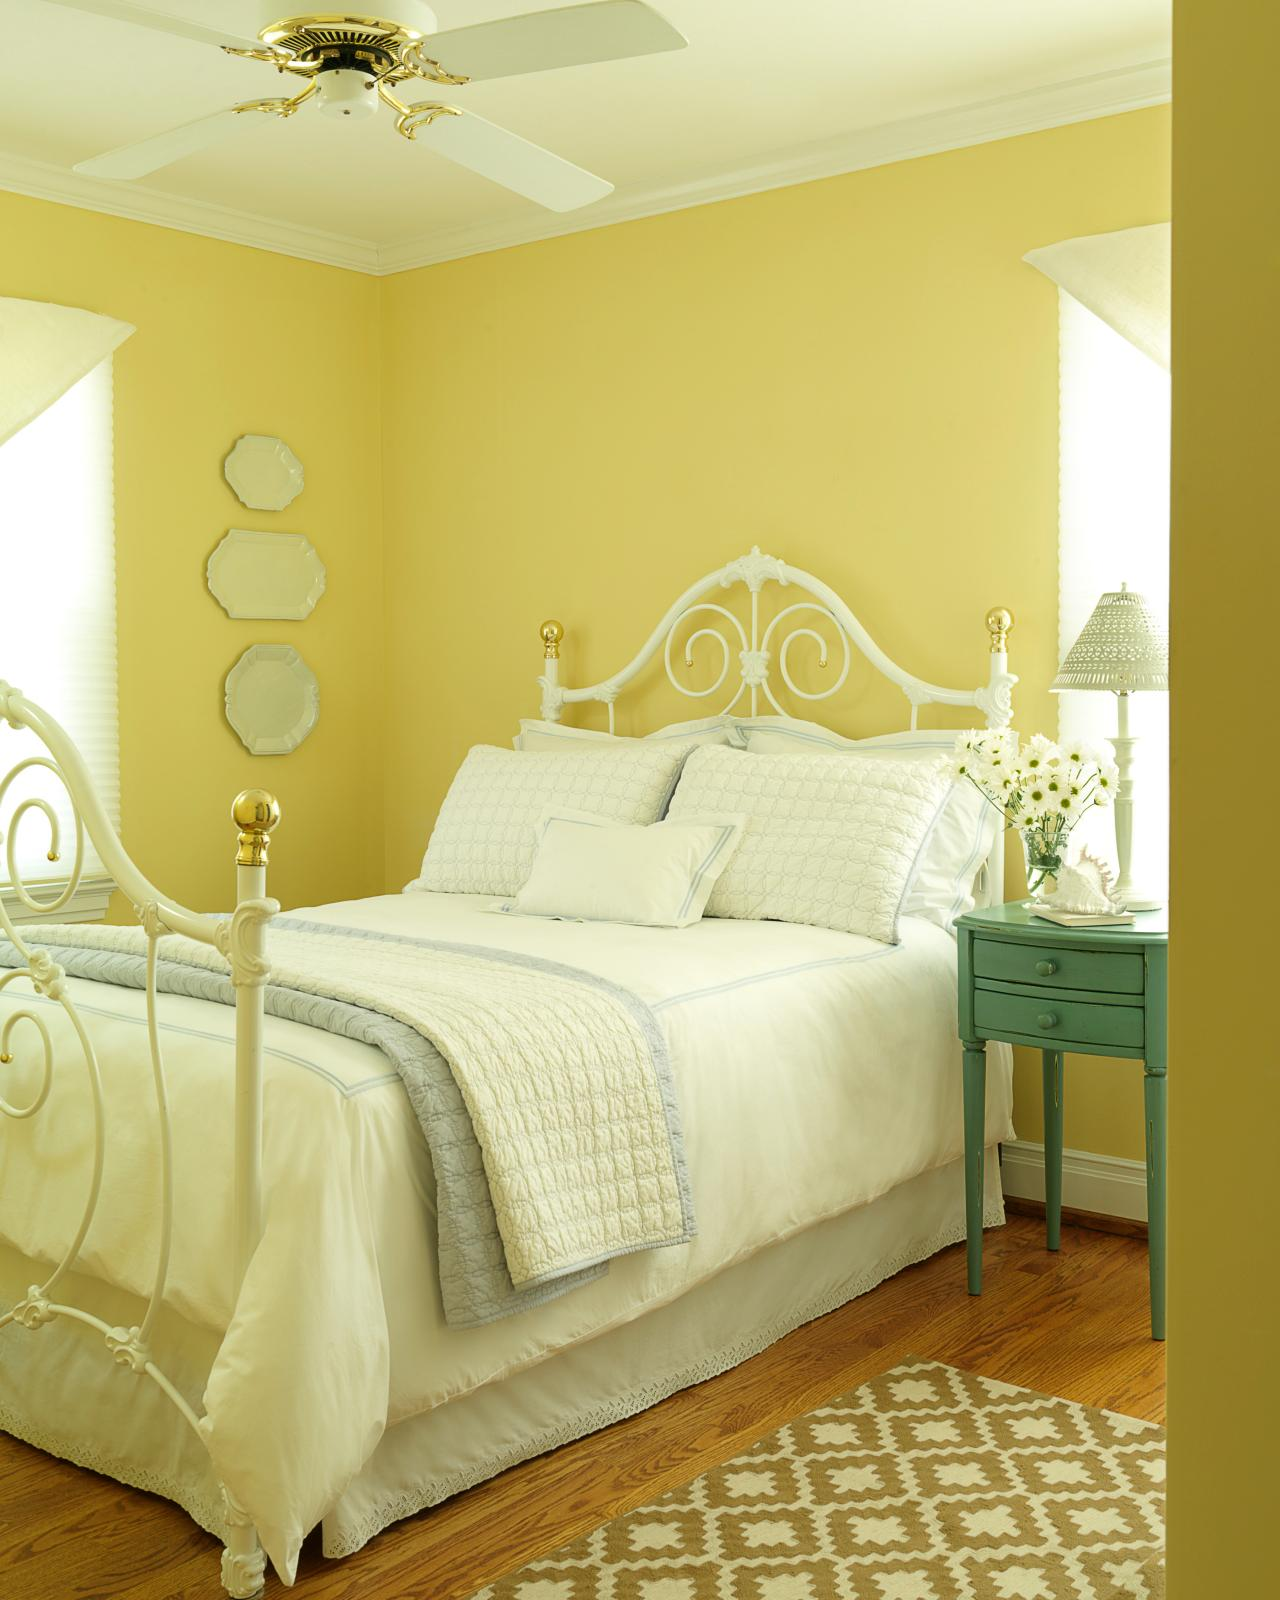 conseils d co quel ton de jaune pour la chambre. Black Bedroom Furniture Sets. Home Design Ideas